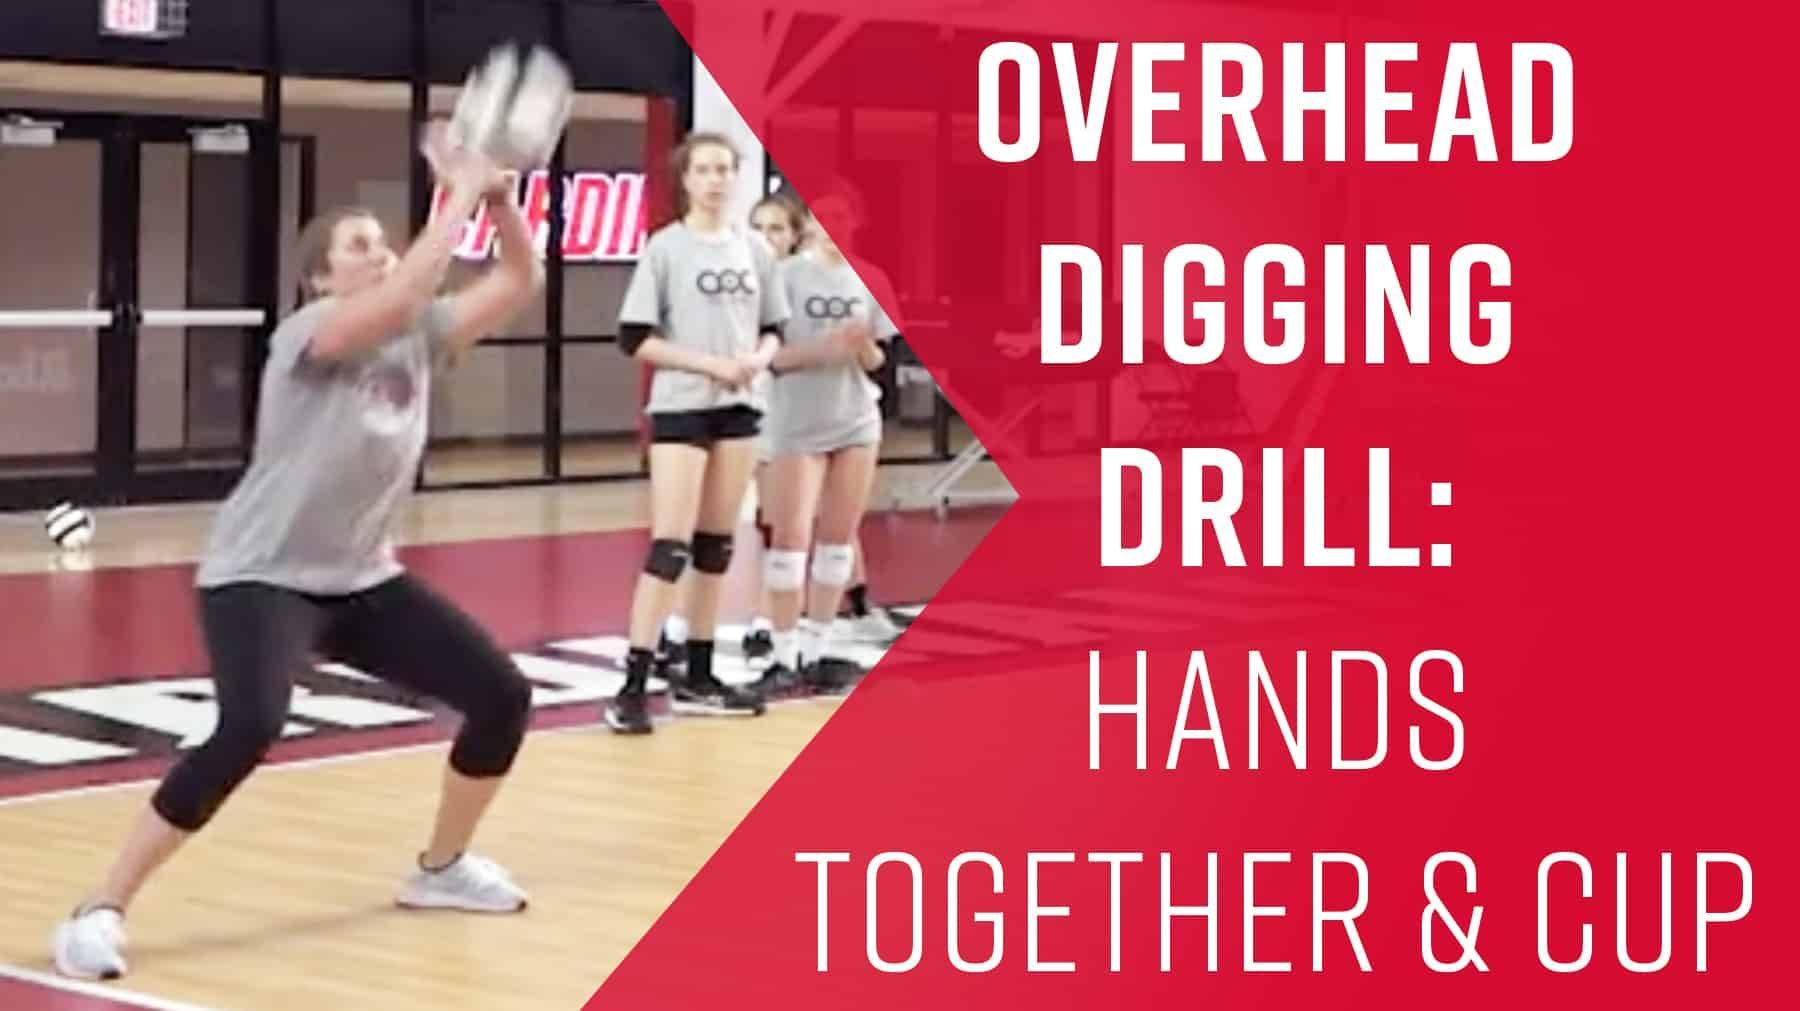 Overhead Digging Drill Hands Together And Cup Coaching Volleyball Drill Volleyball Workouts